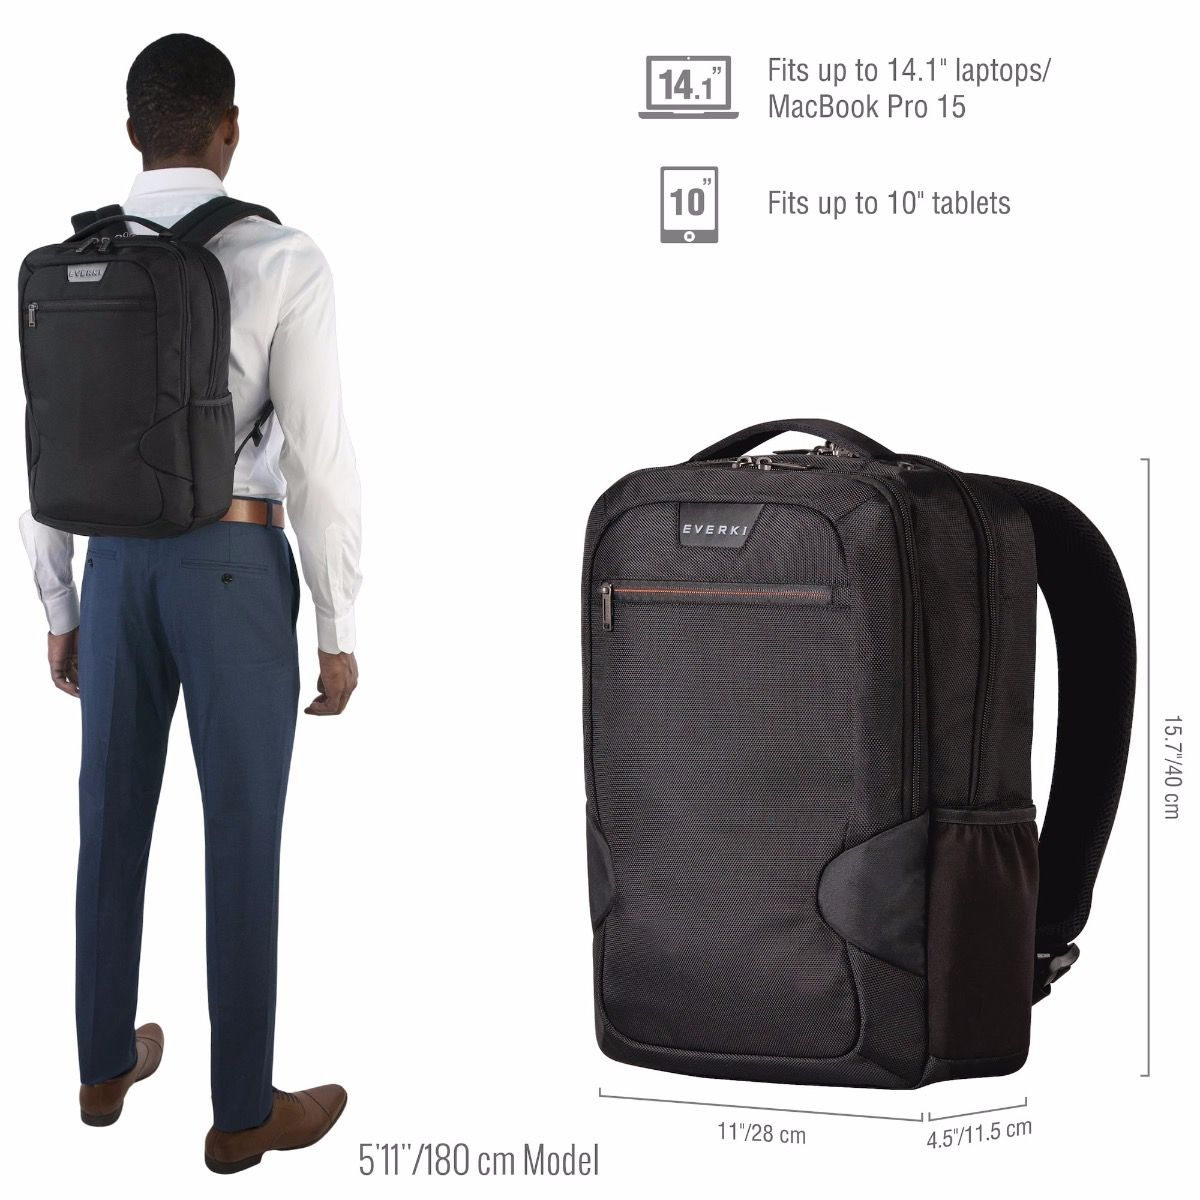 Studio Slim Laptop Backpack Up To 14 1 Inch Macbook Pro 15 Everki